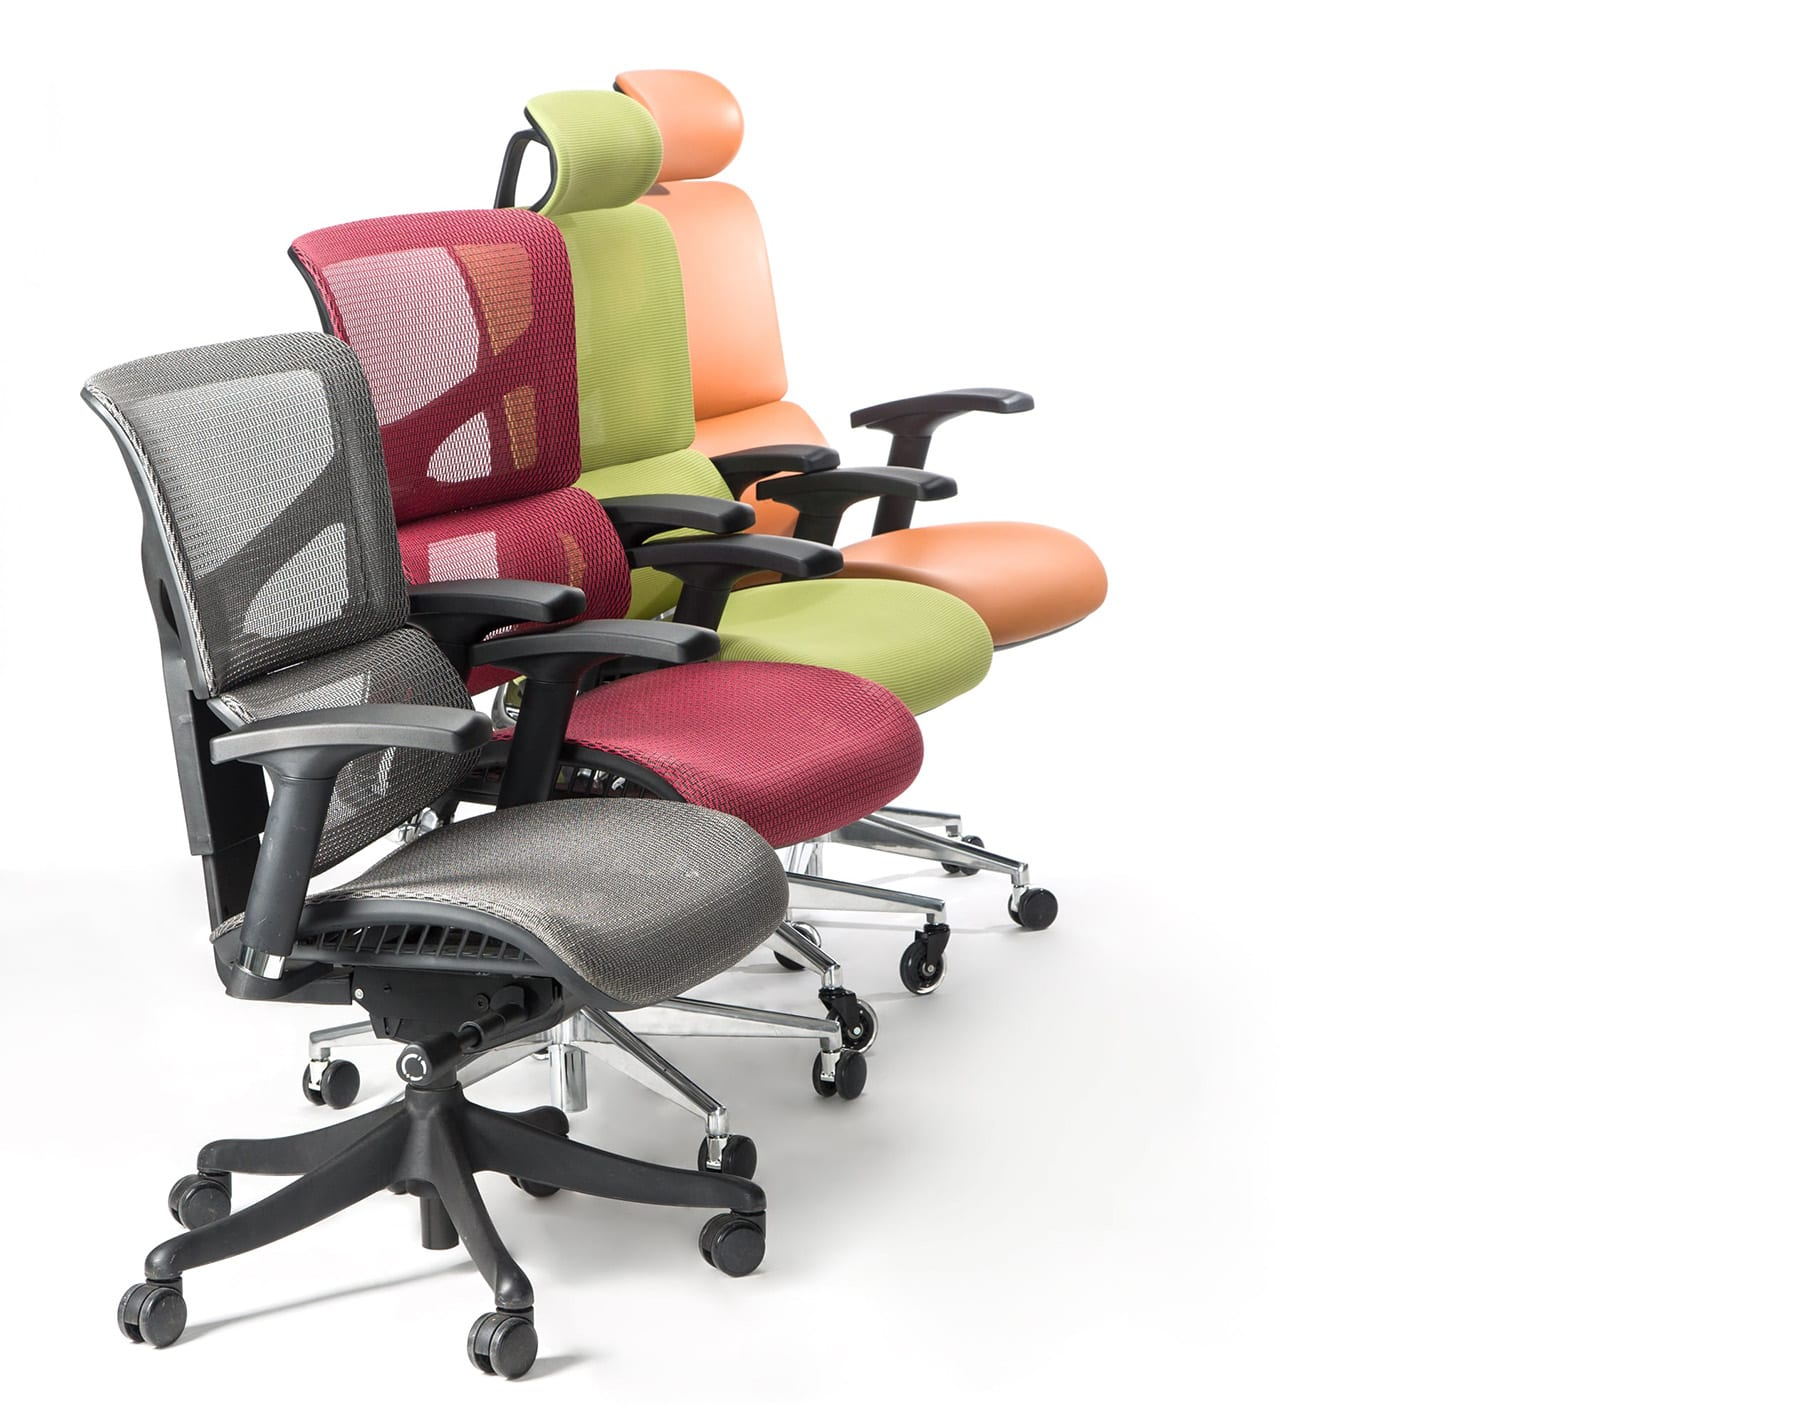 Home office chair: the X-Chair